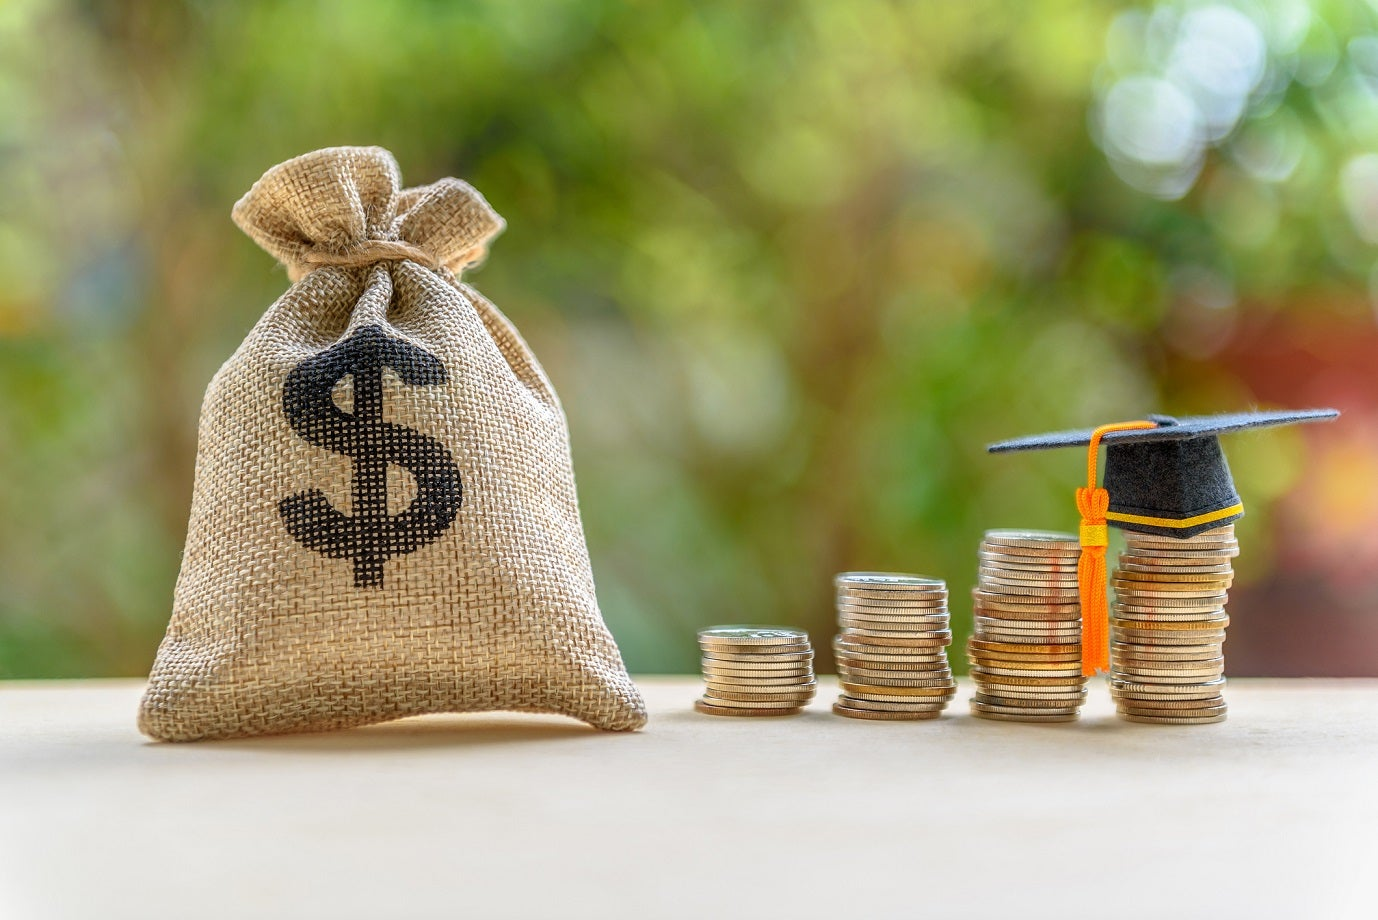 Should I Pay Off Student Loans or Invest in Stocks? | The Motley Fool